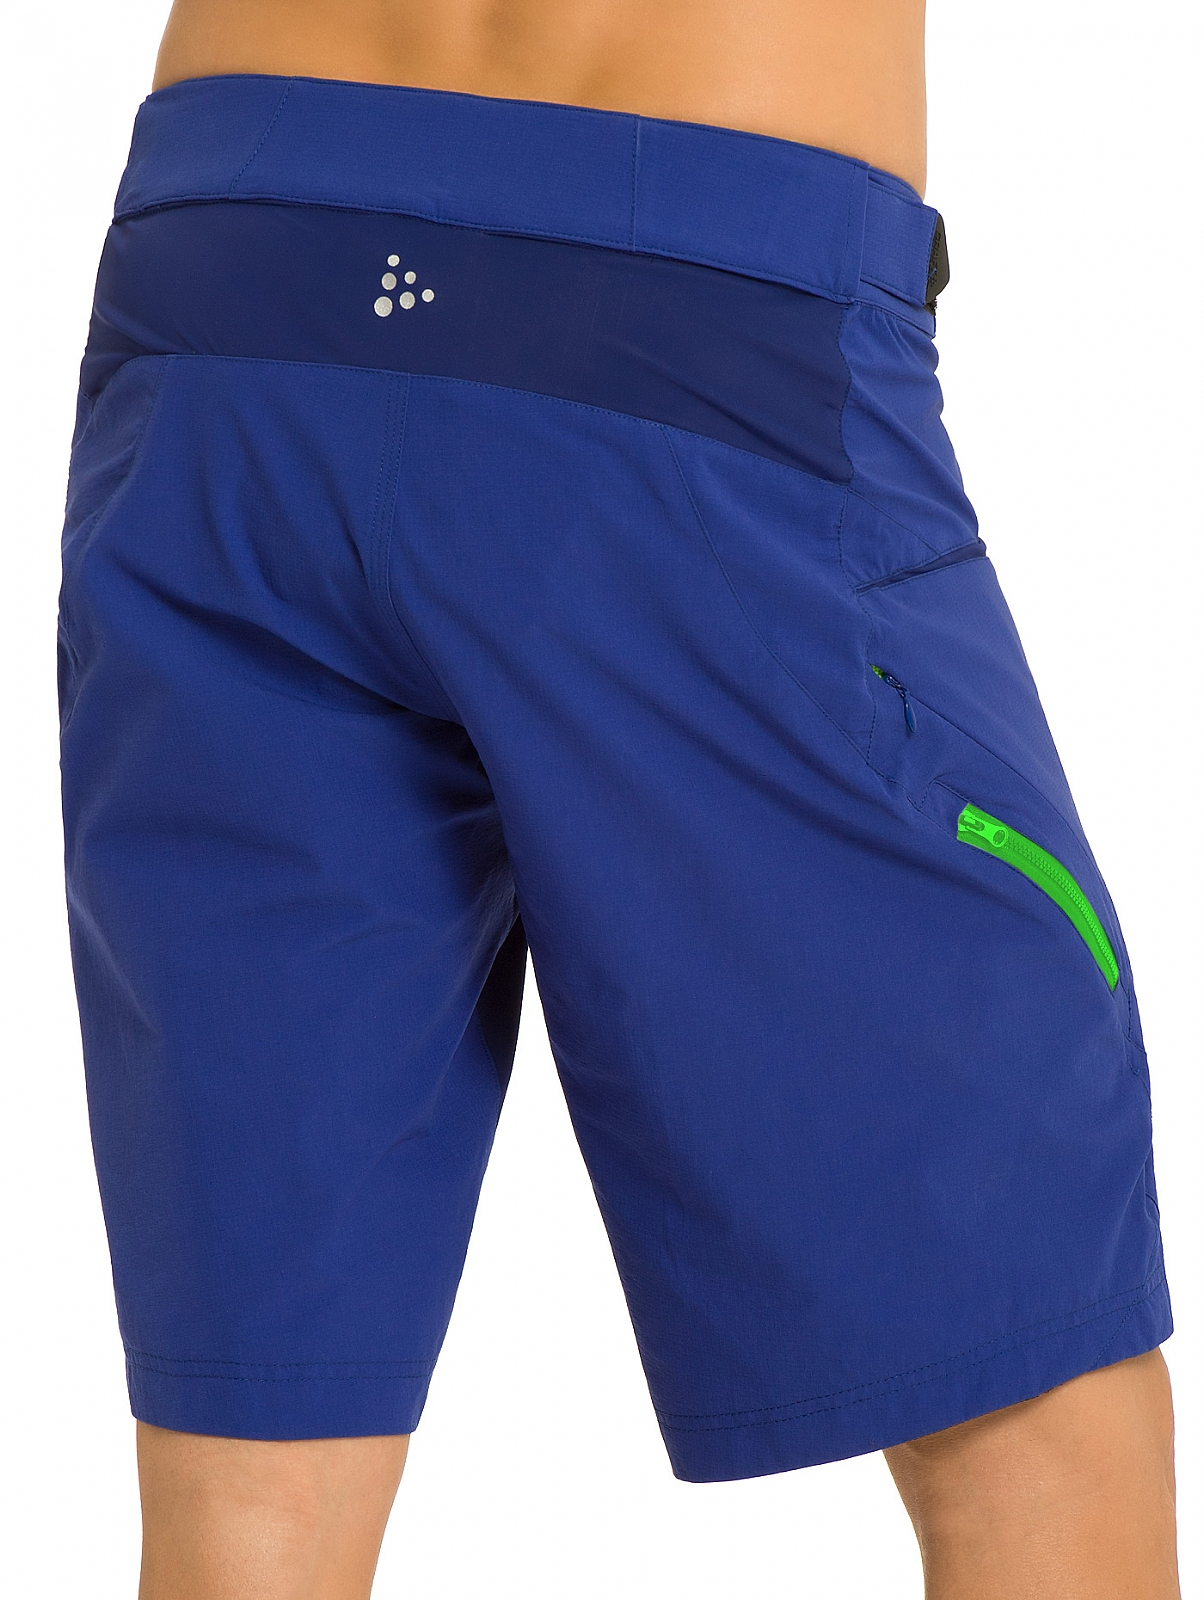 https://i0.wp.com/www.craft-sports.de/out/pictures/generated/product/2/1300_1600_100/Craft-Path-Bike-Loose-Fit-Shorts-blau-1900683-2344.jpg